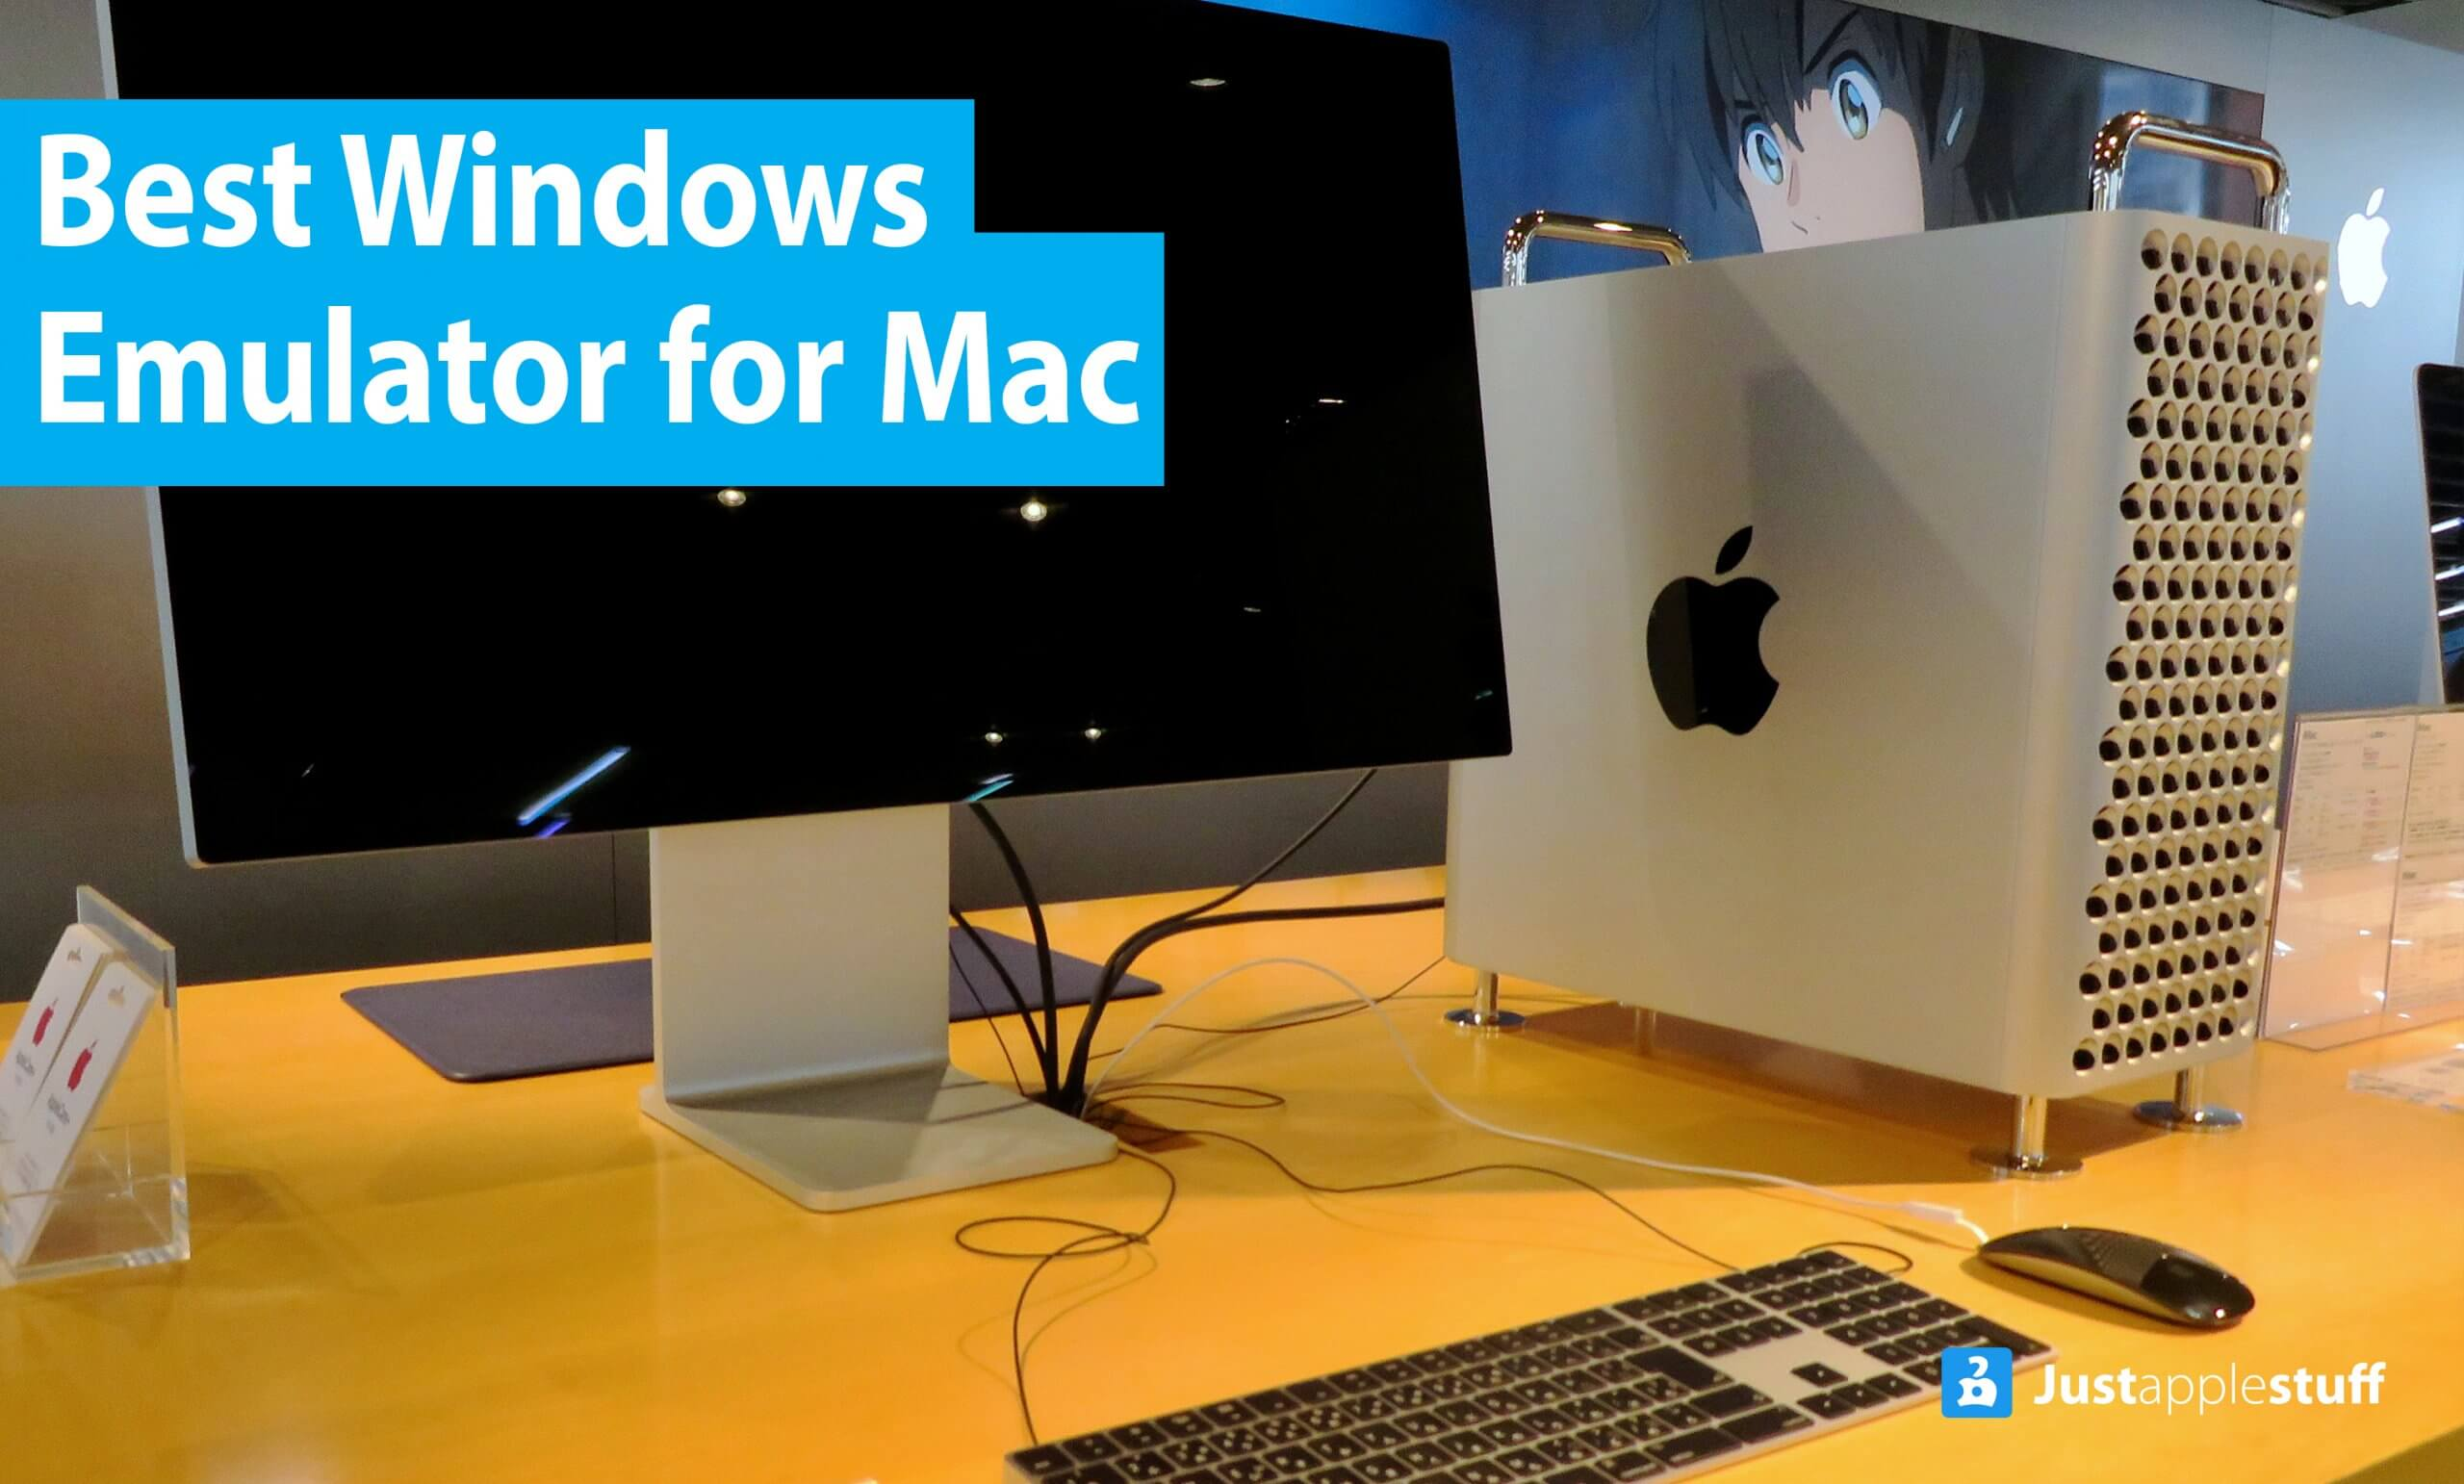 Best Windows Emulator for Mac